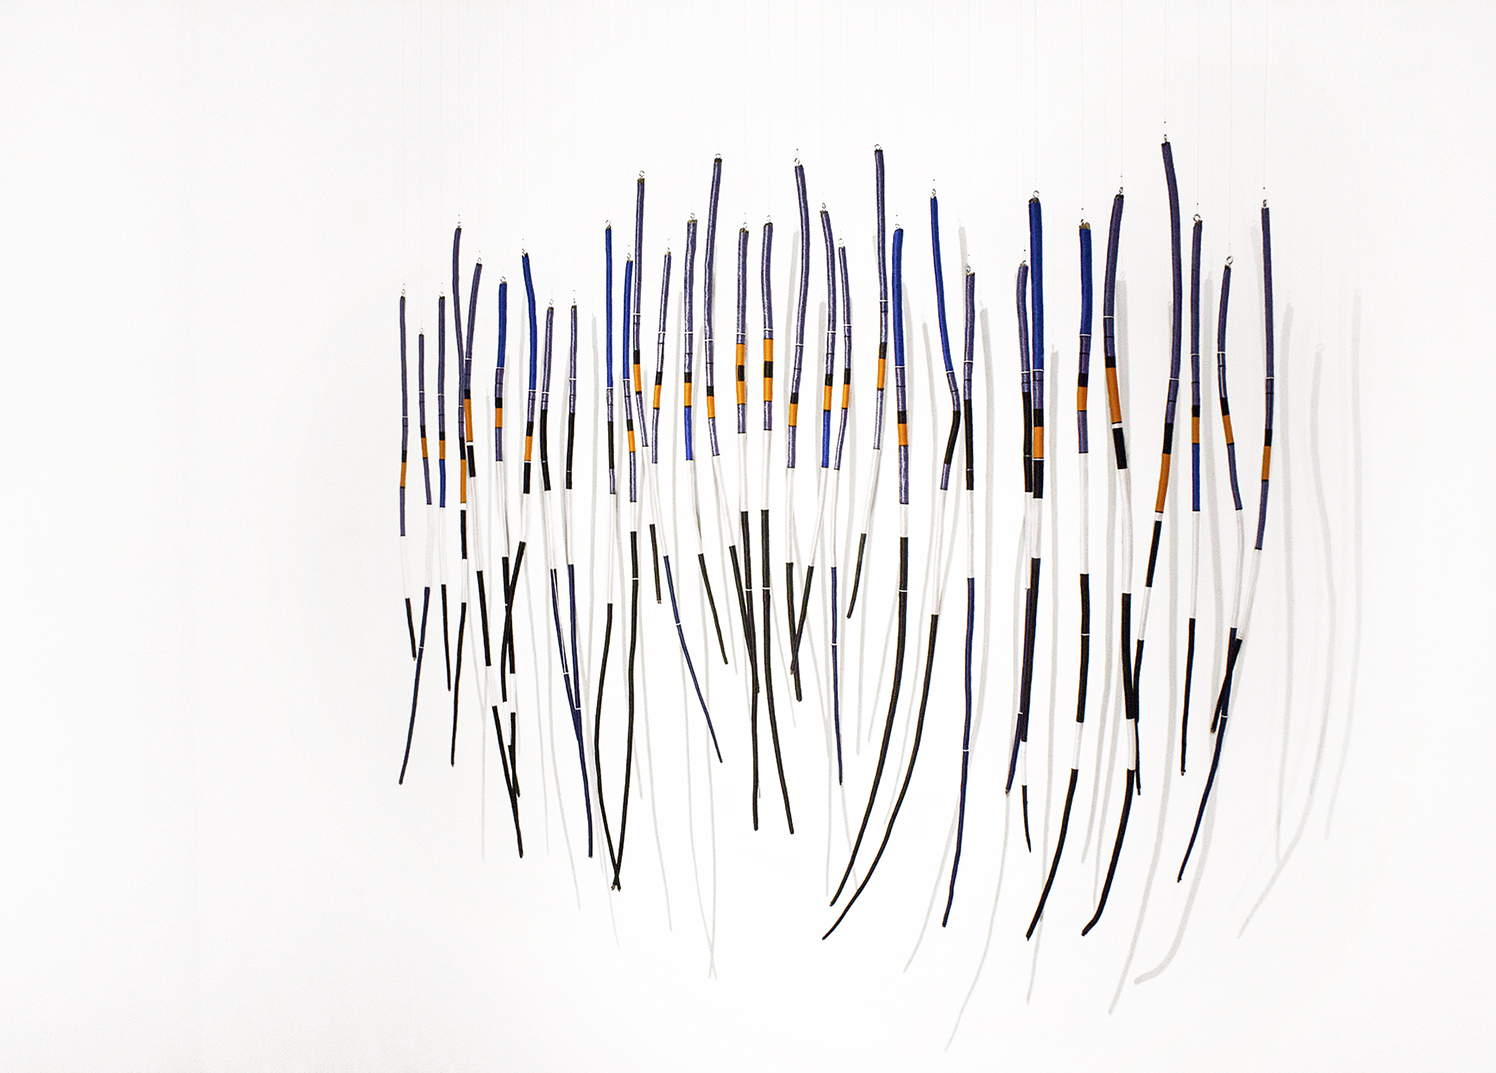 VICEROY, 2016, yarn and found pine branches, 110cm x 140cm